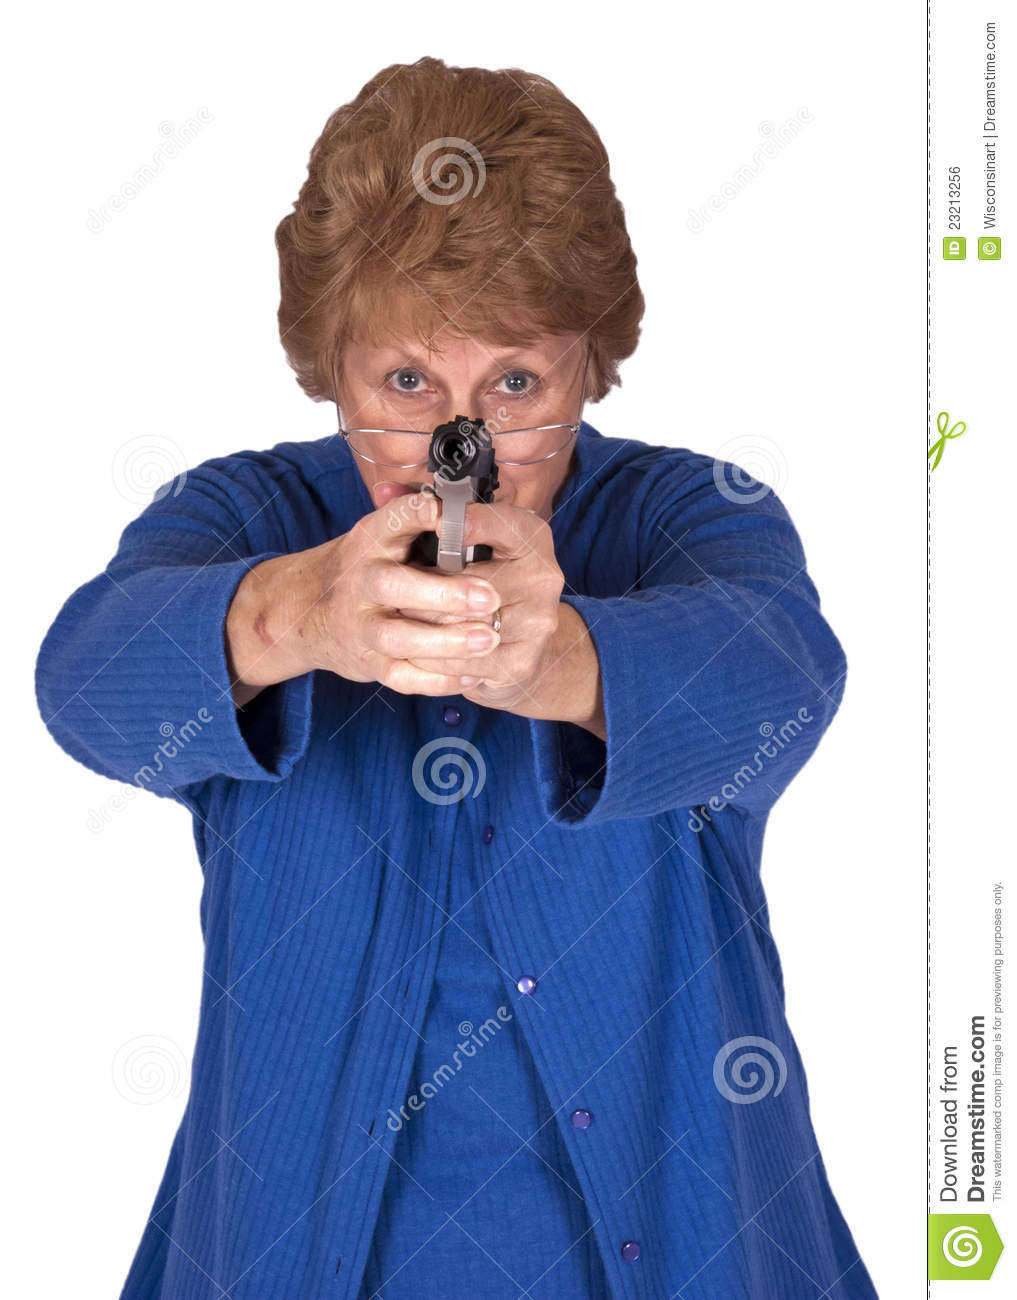 Grandma Stock Image : grandma, stock, image, Grandma, Photos, Royalty-Free, Stock, Dreamstime